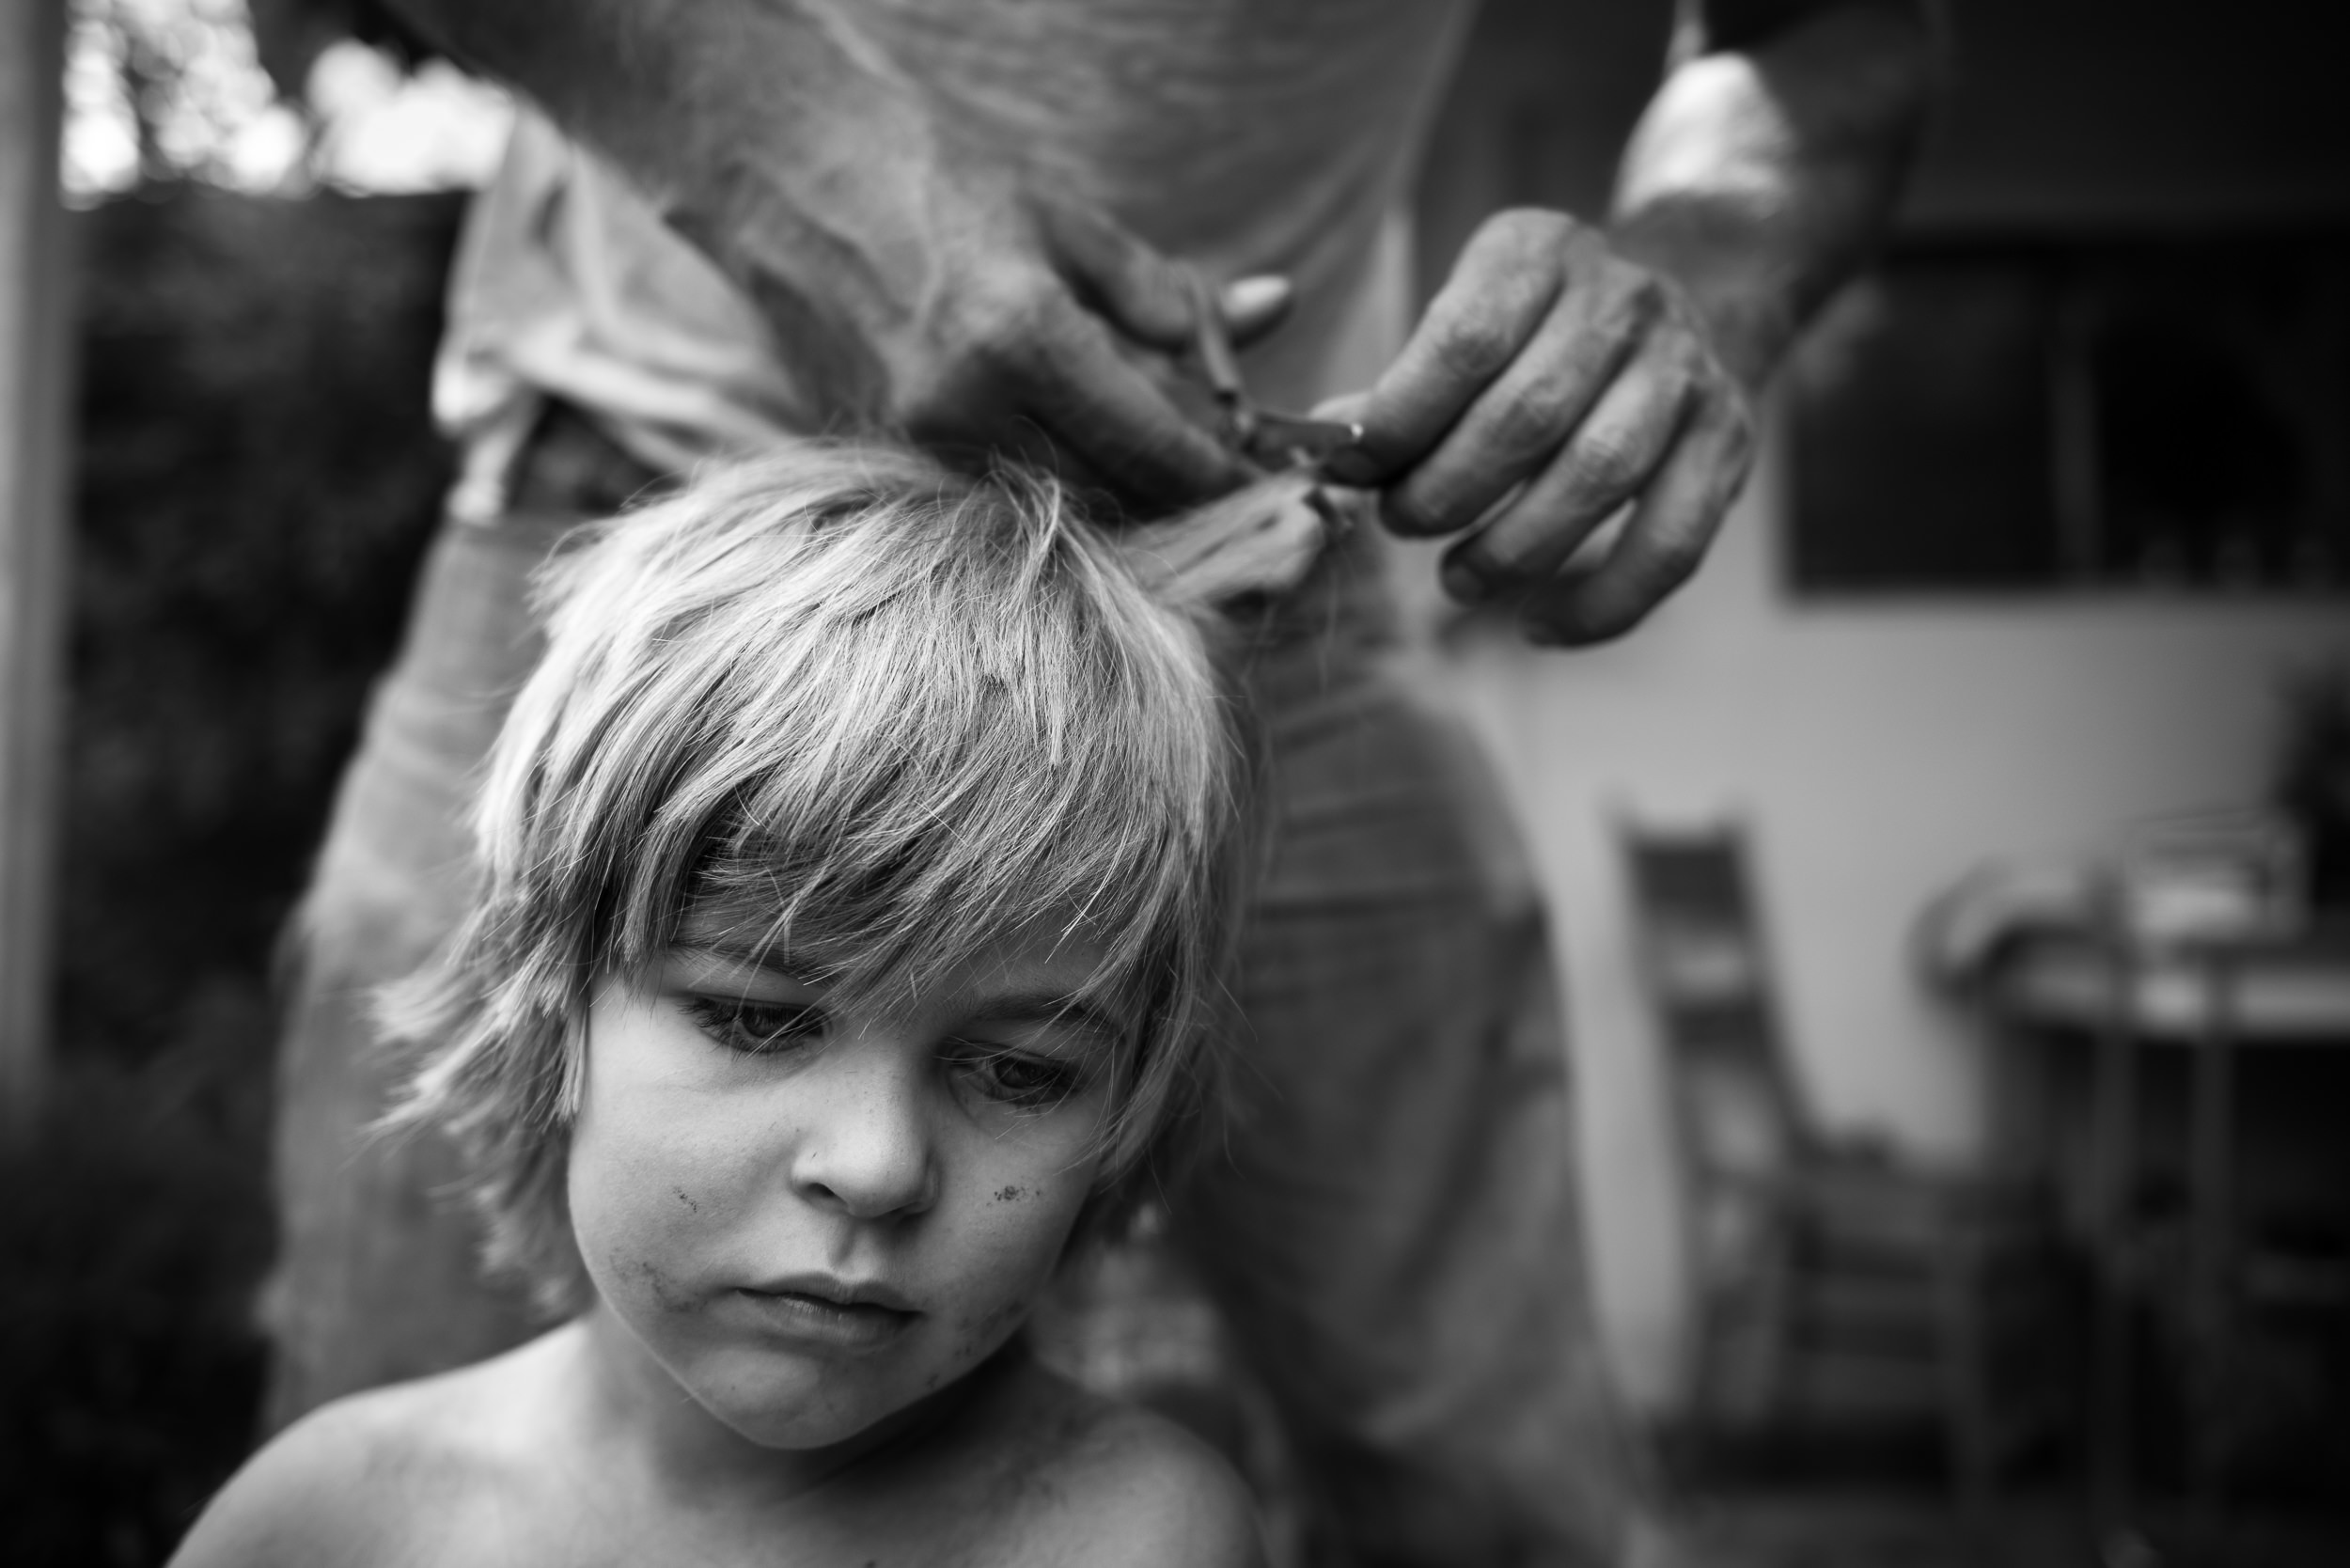 Molly Rees Photo - Black and White Documentary Childhood Photography - boy getting haircut outside by M. Menschel